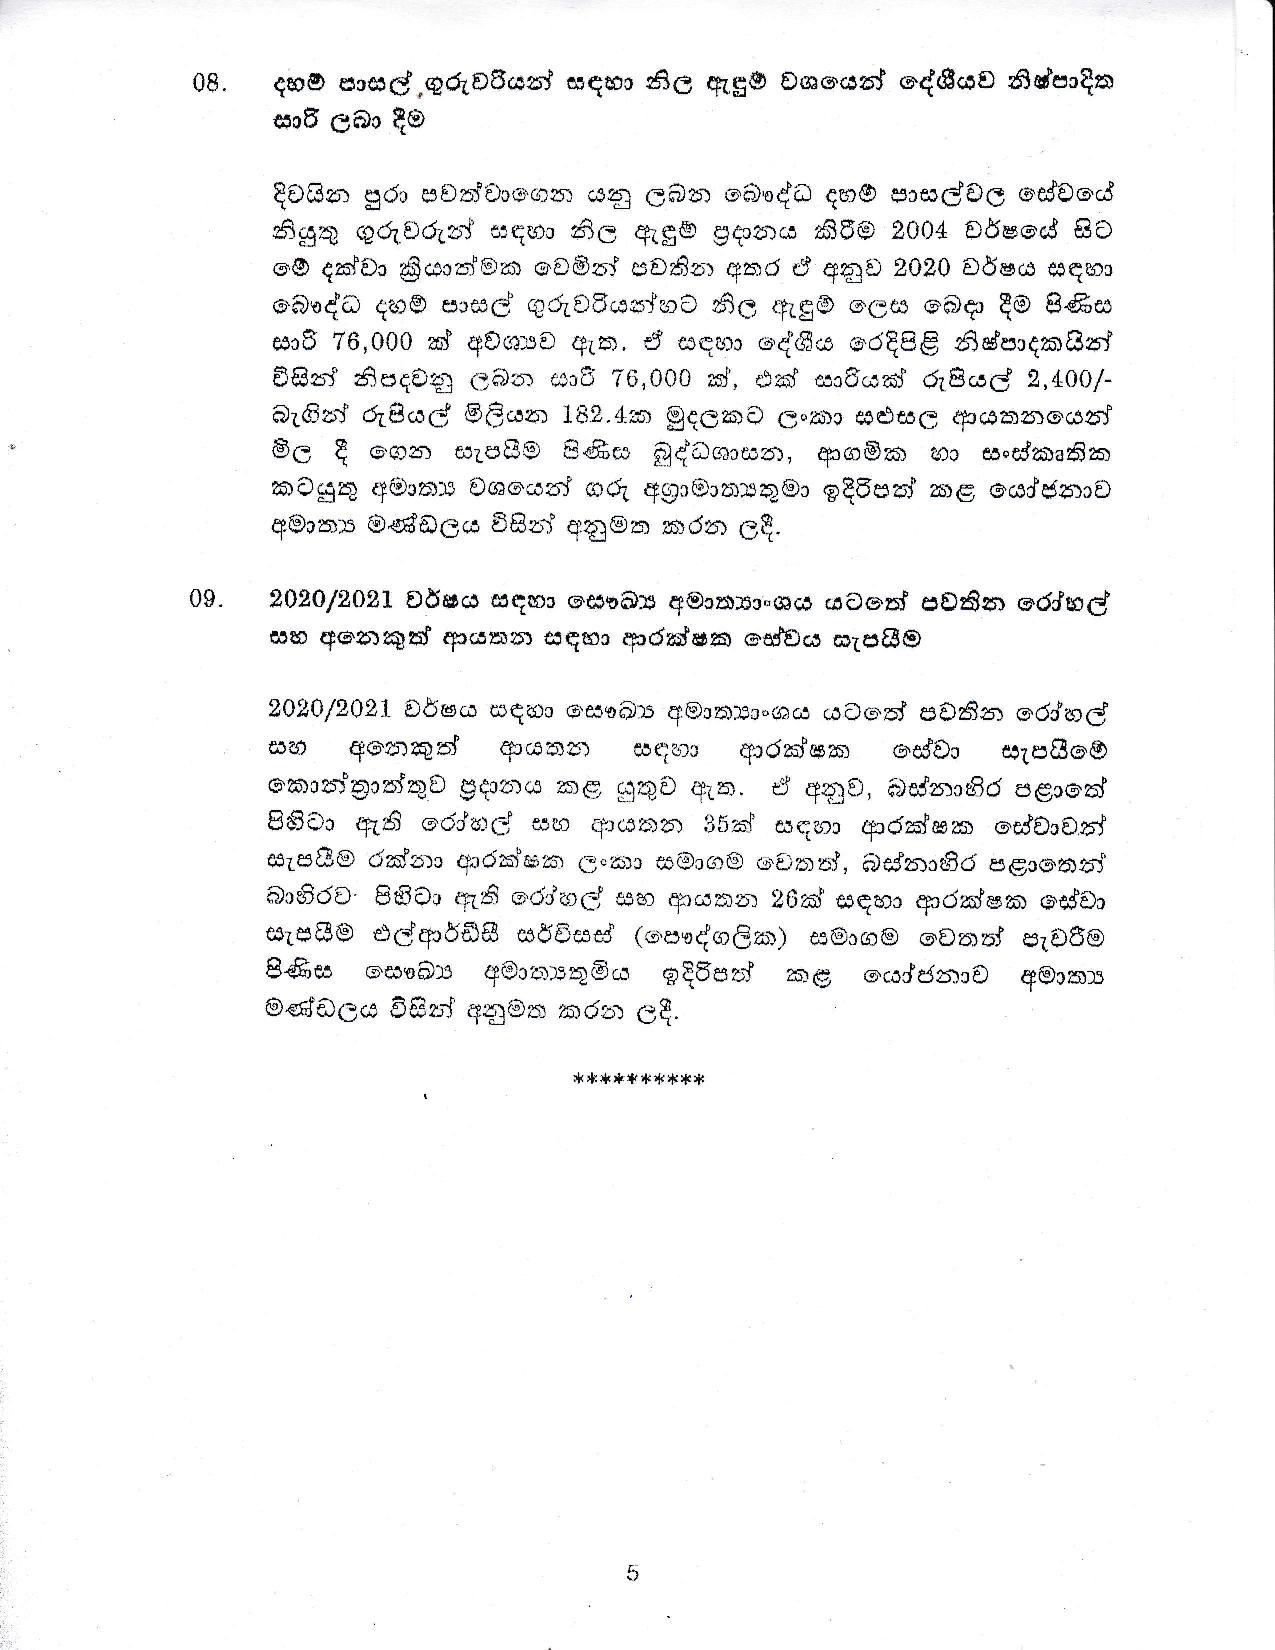 Cabinet Decision on 02.11.2020 page 005